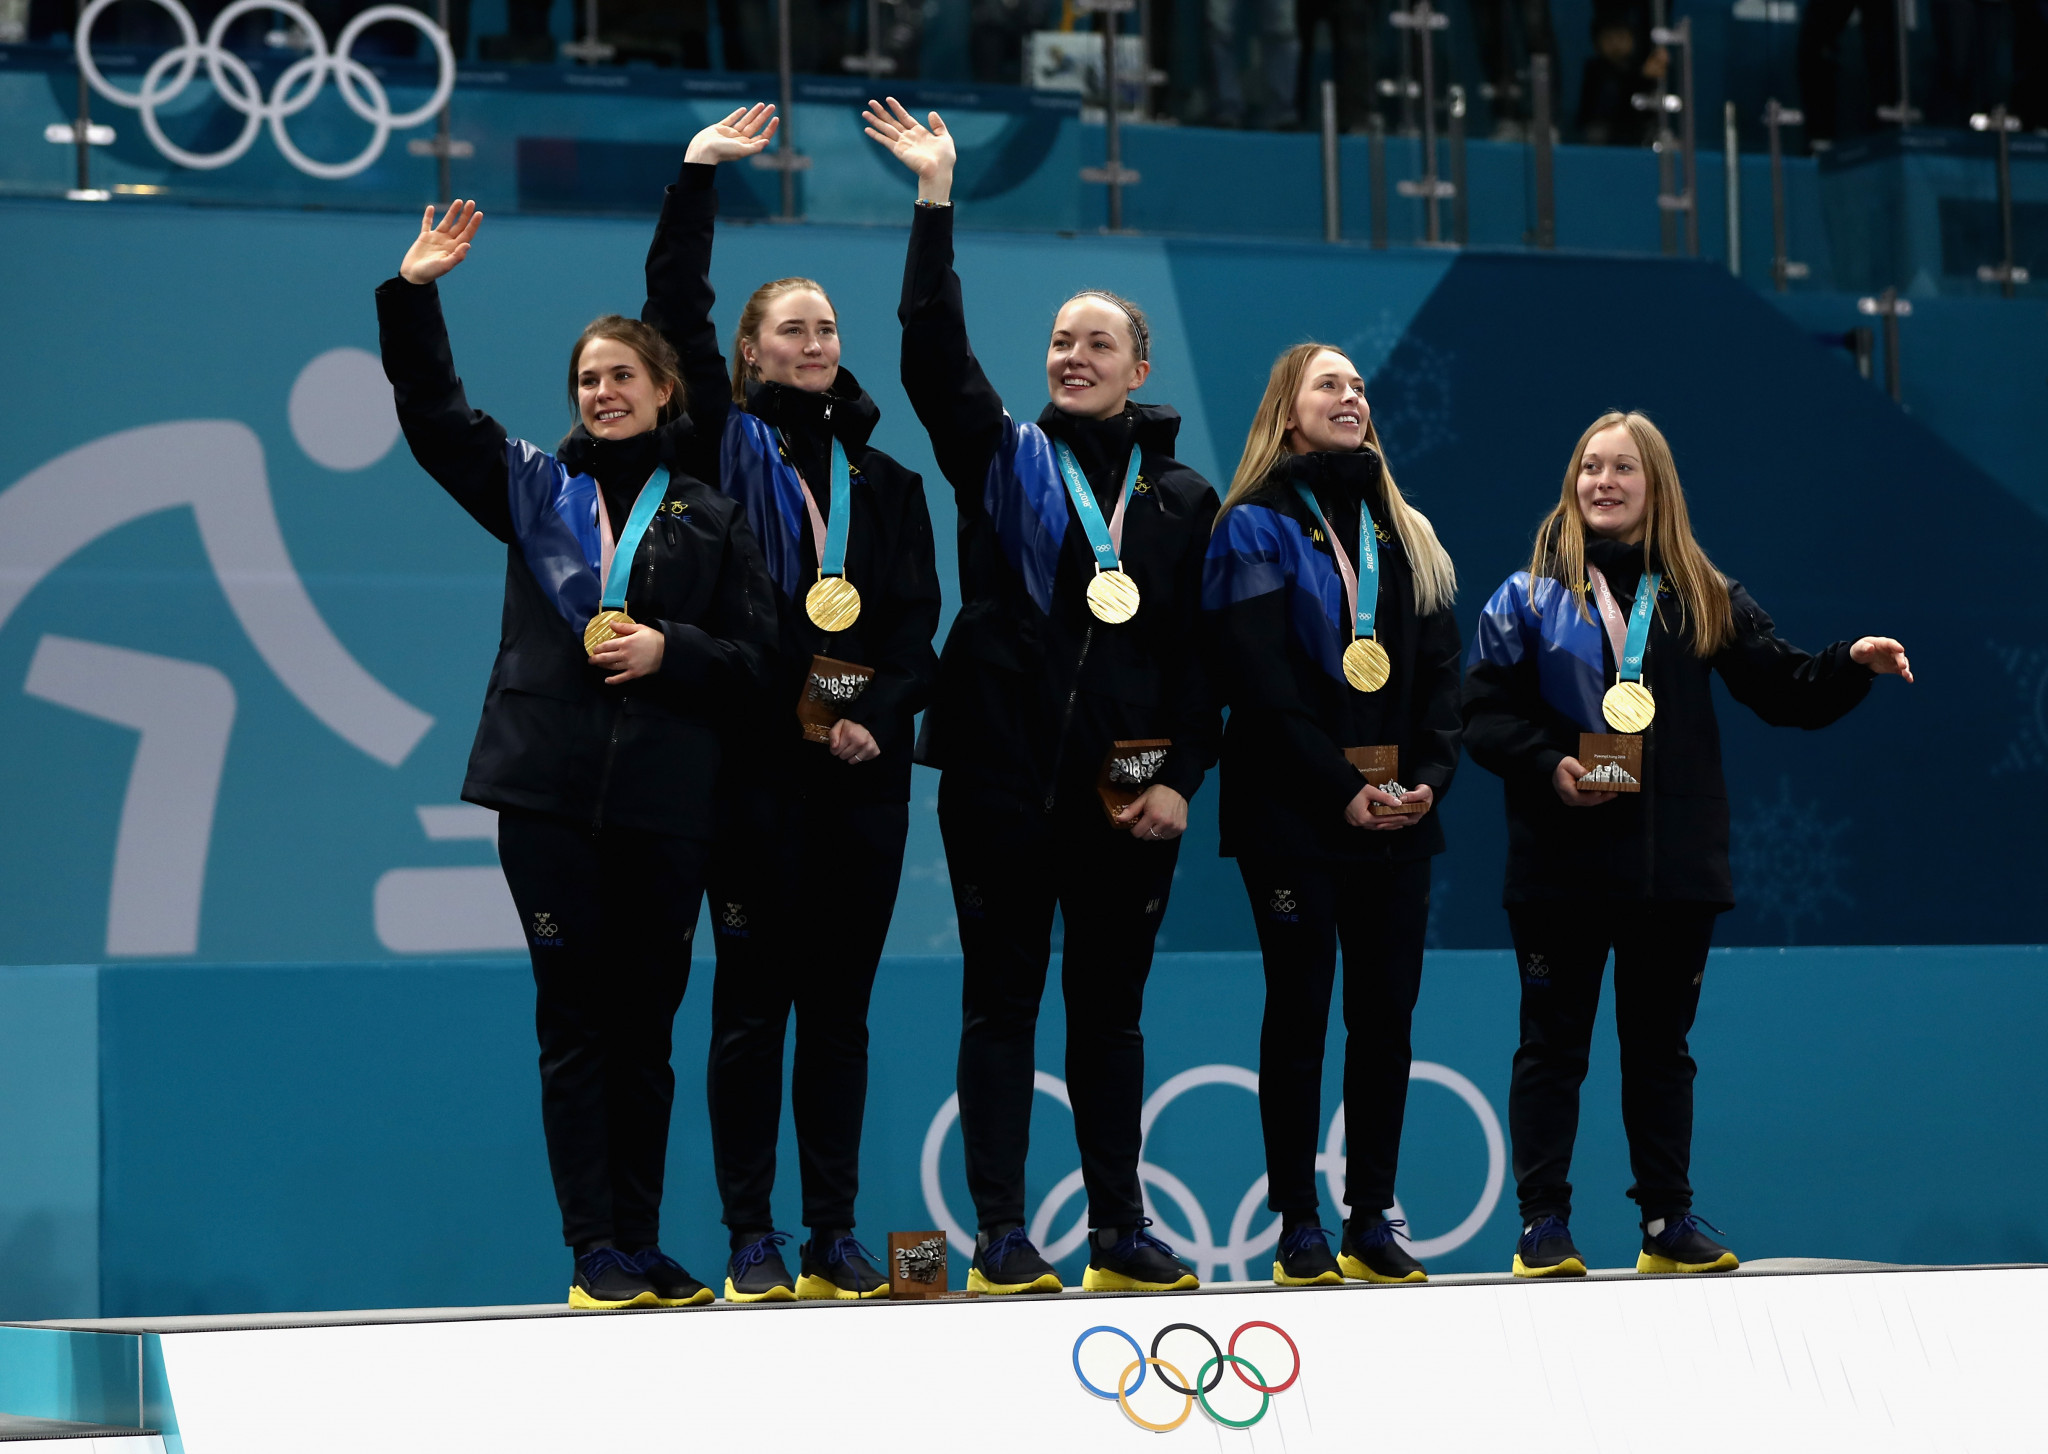 Pyeongchang 2018 women's curling champions Sweden will seek to win world gold in Denmark starting tomorrow ©Getty Images